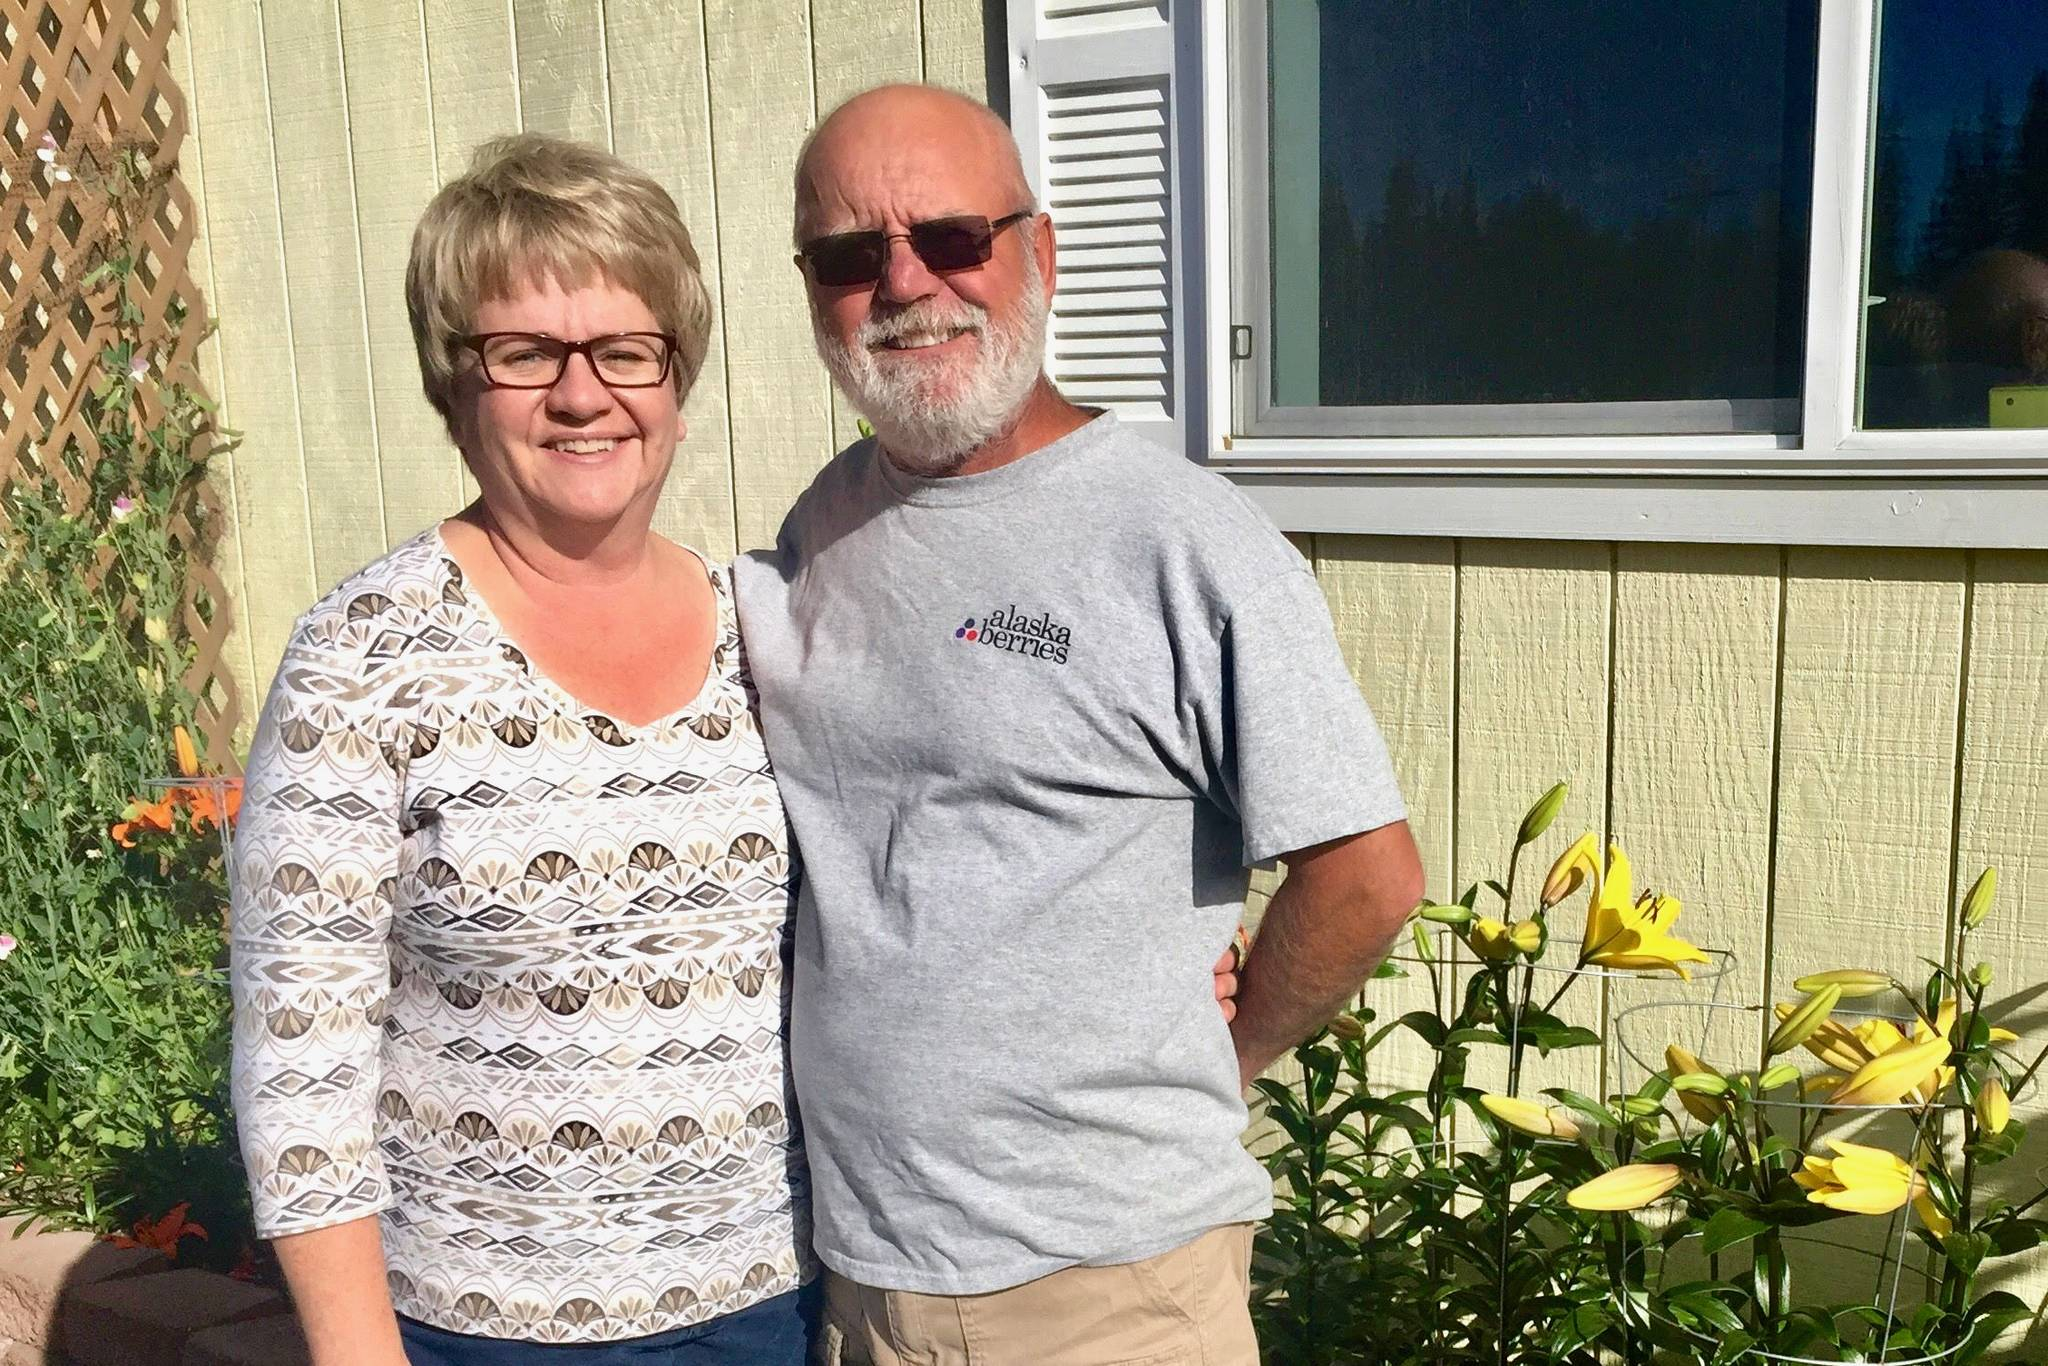 Laurie and Brian Olson at their farm on Wednesday, Aug. 15, 2018, near Soldotna, Alaska. The couple was recently named Farm Family of the Year by the Alaska State Fair. (Photo by Victoria Petersen/Peninsula Clarion)